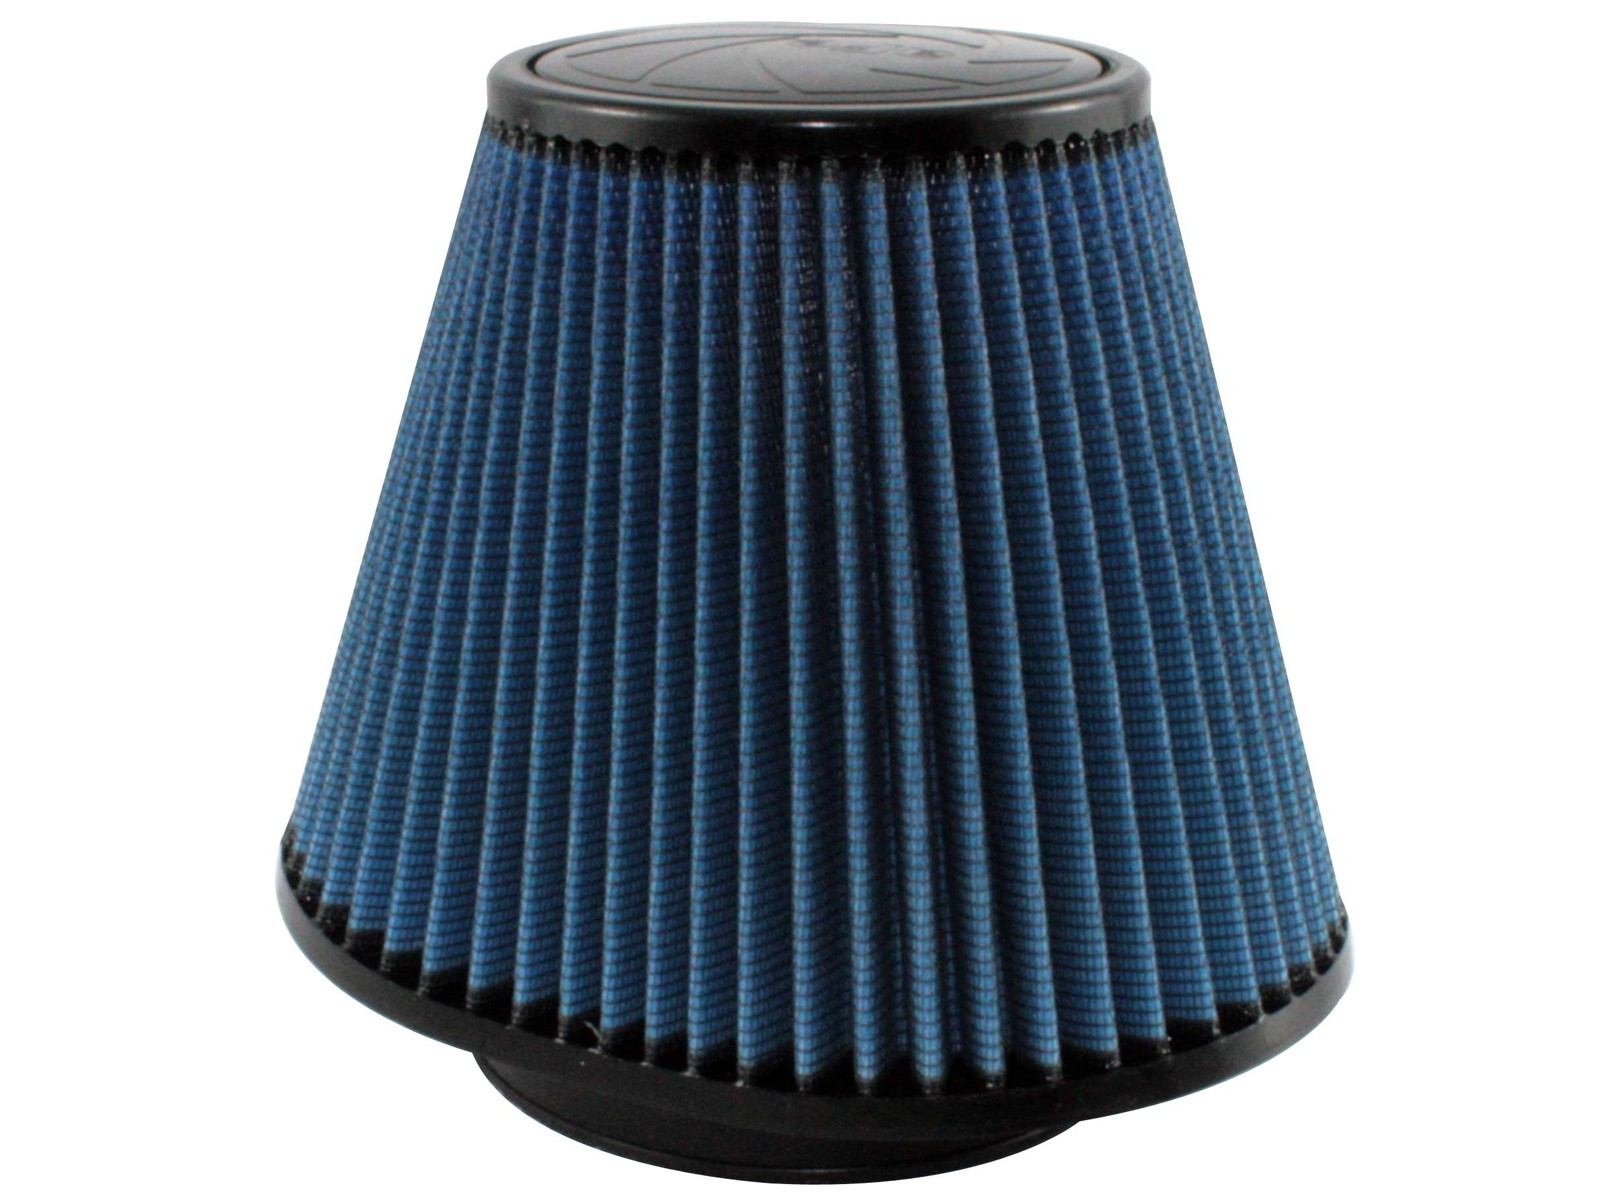 "Magnum Flow Pro 5R Round Tapered Blue Air Filter 5.5/"" F x 9/"" B x 7/"" T x 8/"" H"